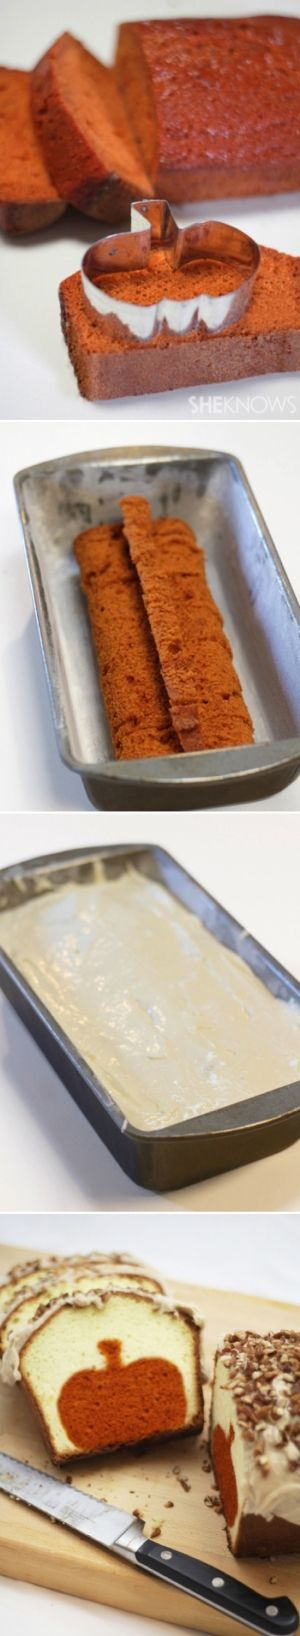 peekaboo pumpkin pound cake- use a christmas tree cookie cutter or star